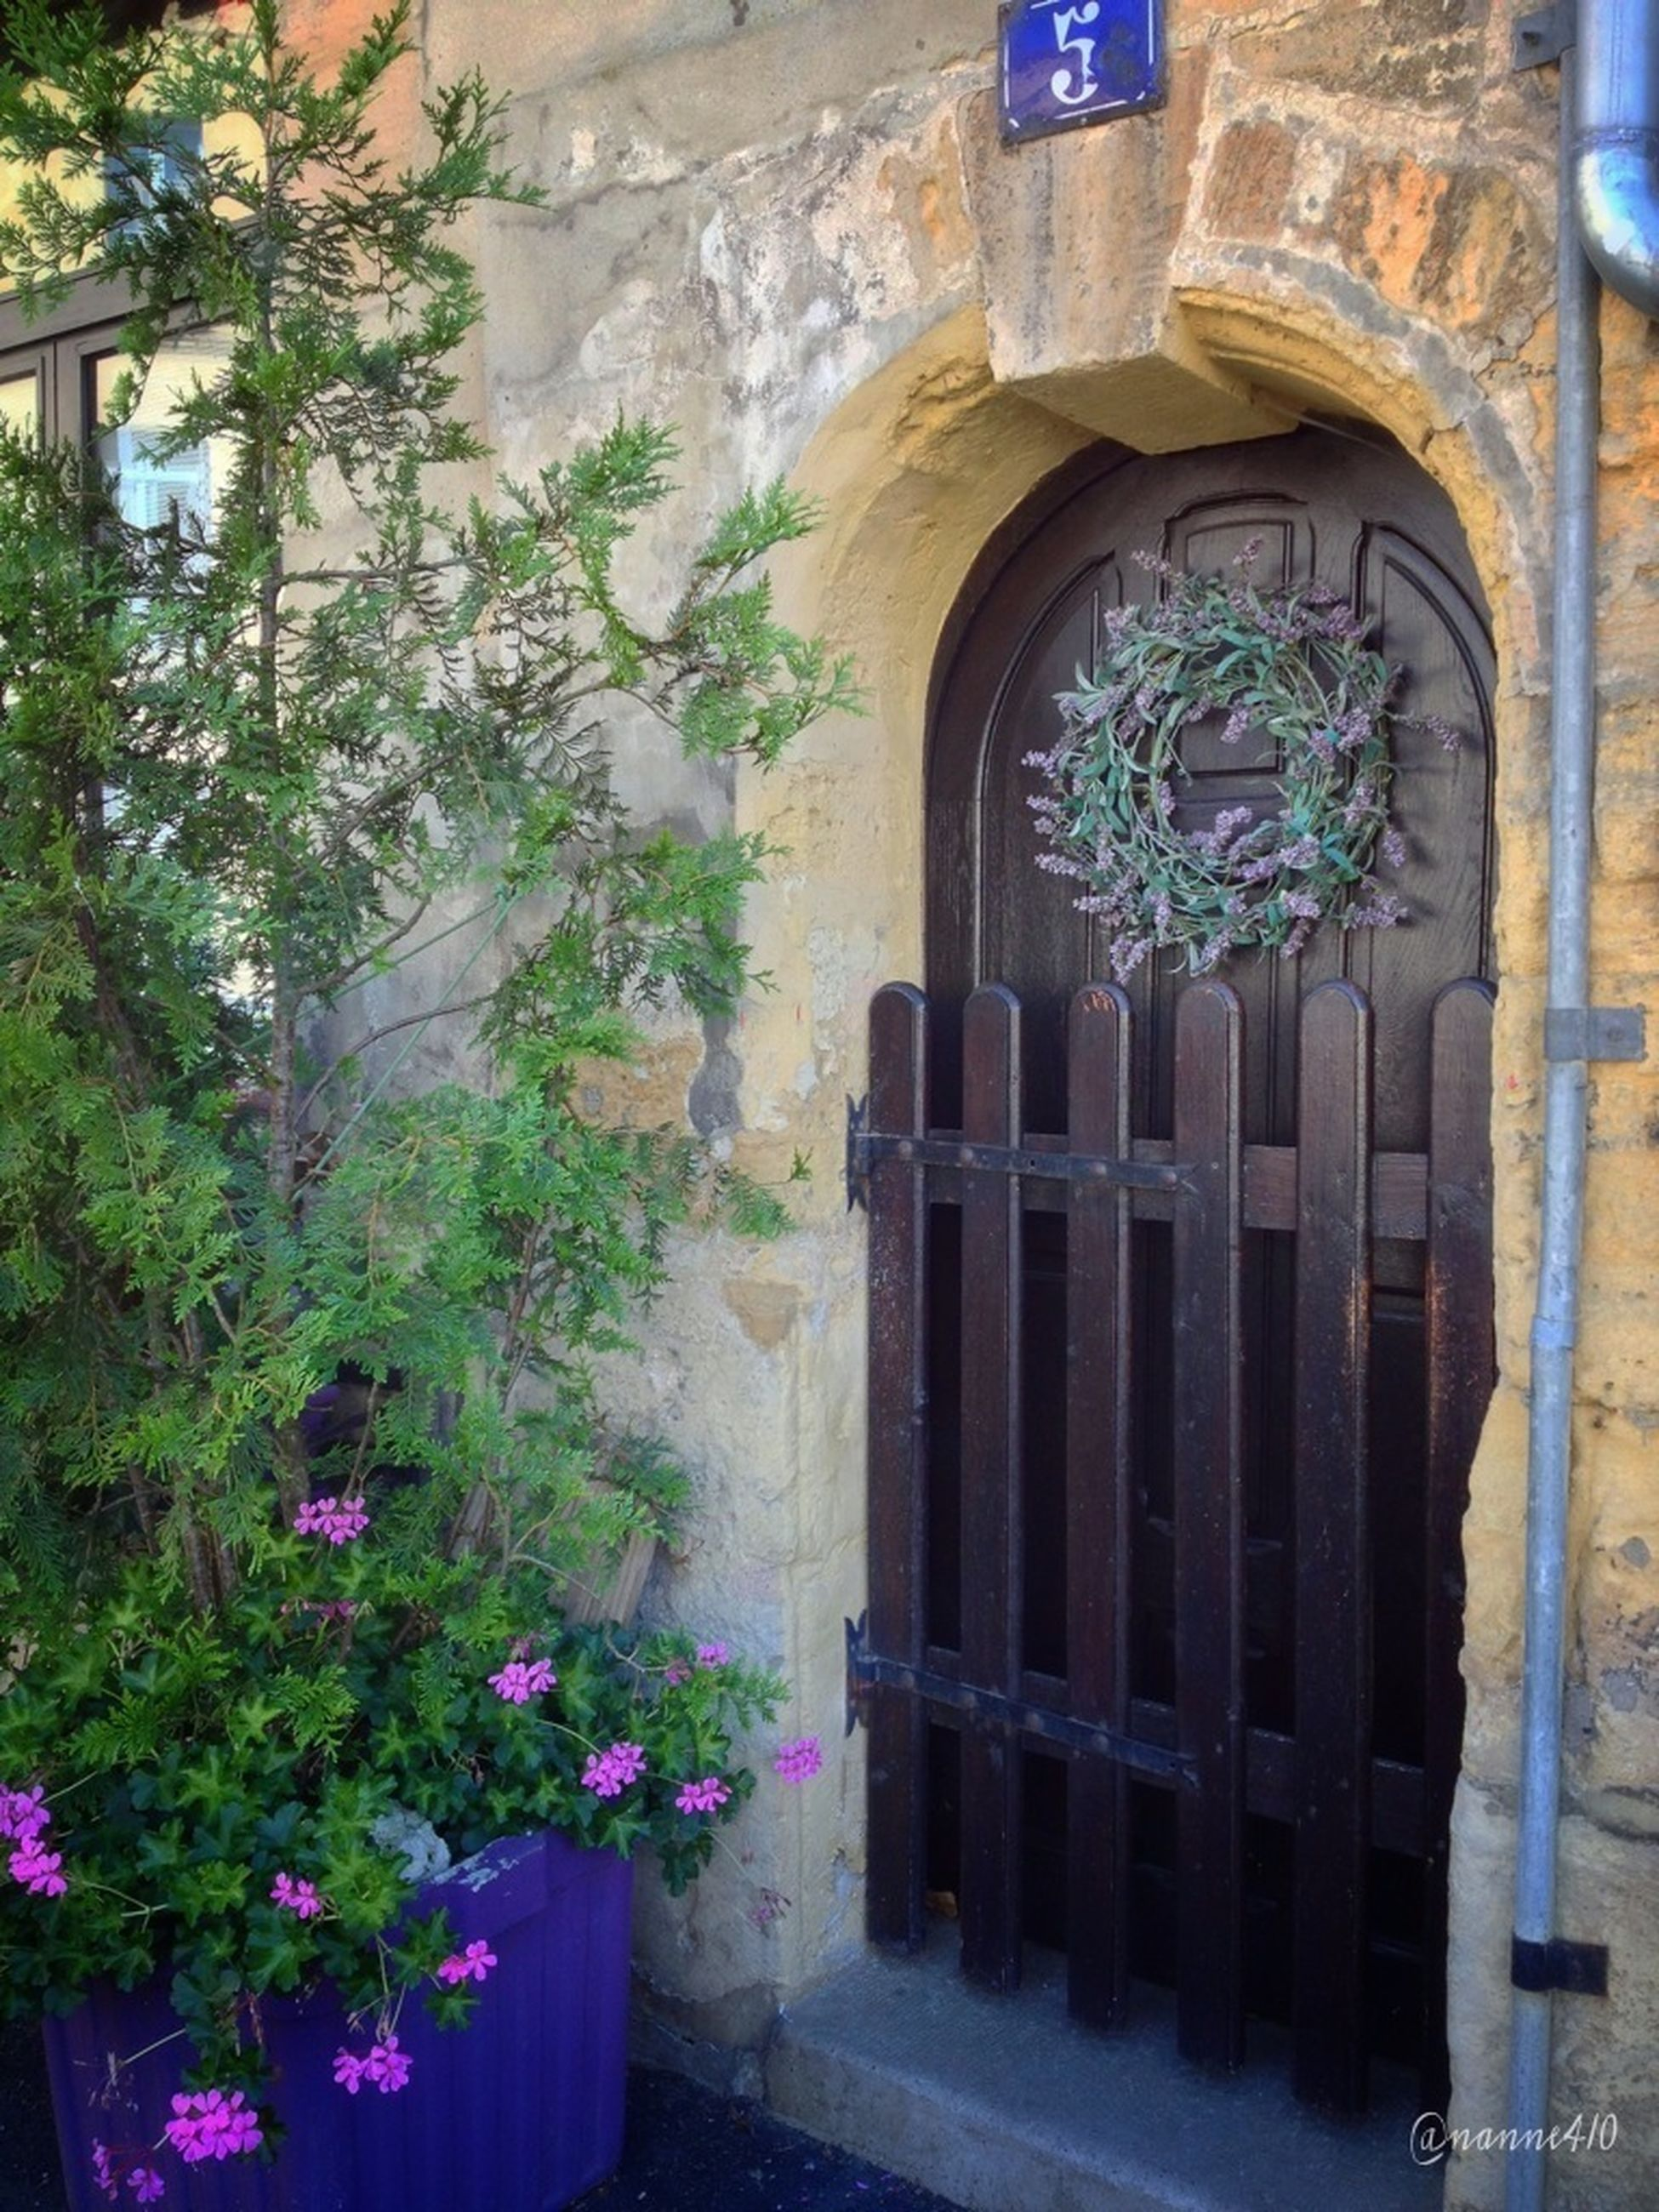 architecture, built structure, building exterior, plant, flower, growth, arch, potted plant, wall - building feature, house, window, entrance, door, day, wall, tree, no people, old, building, outdoors